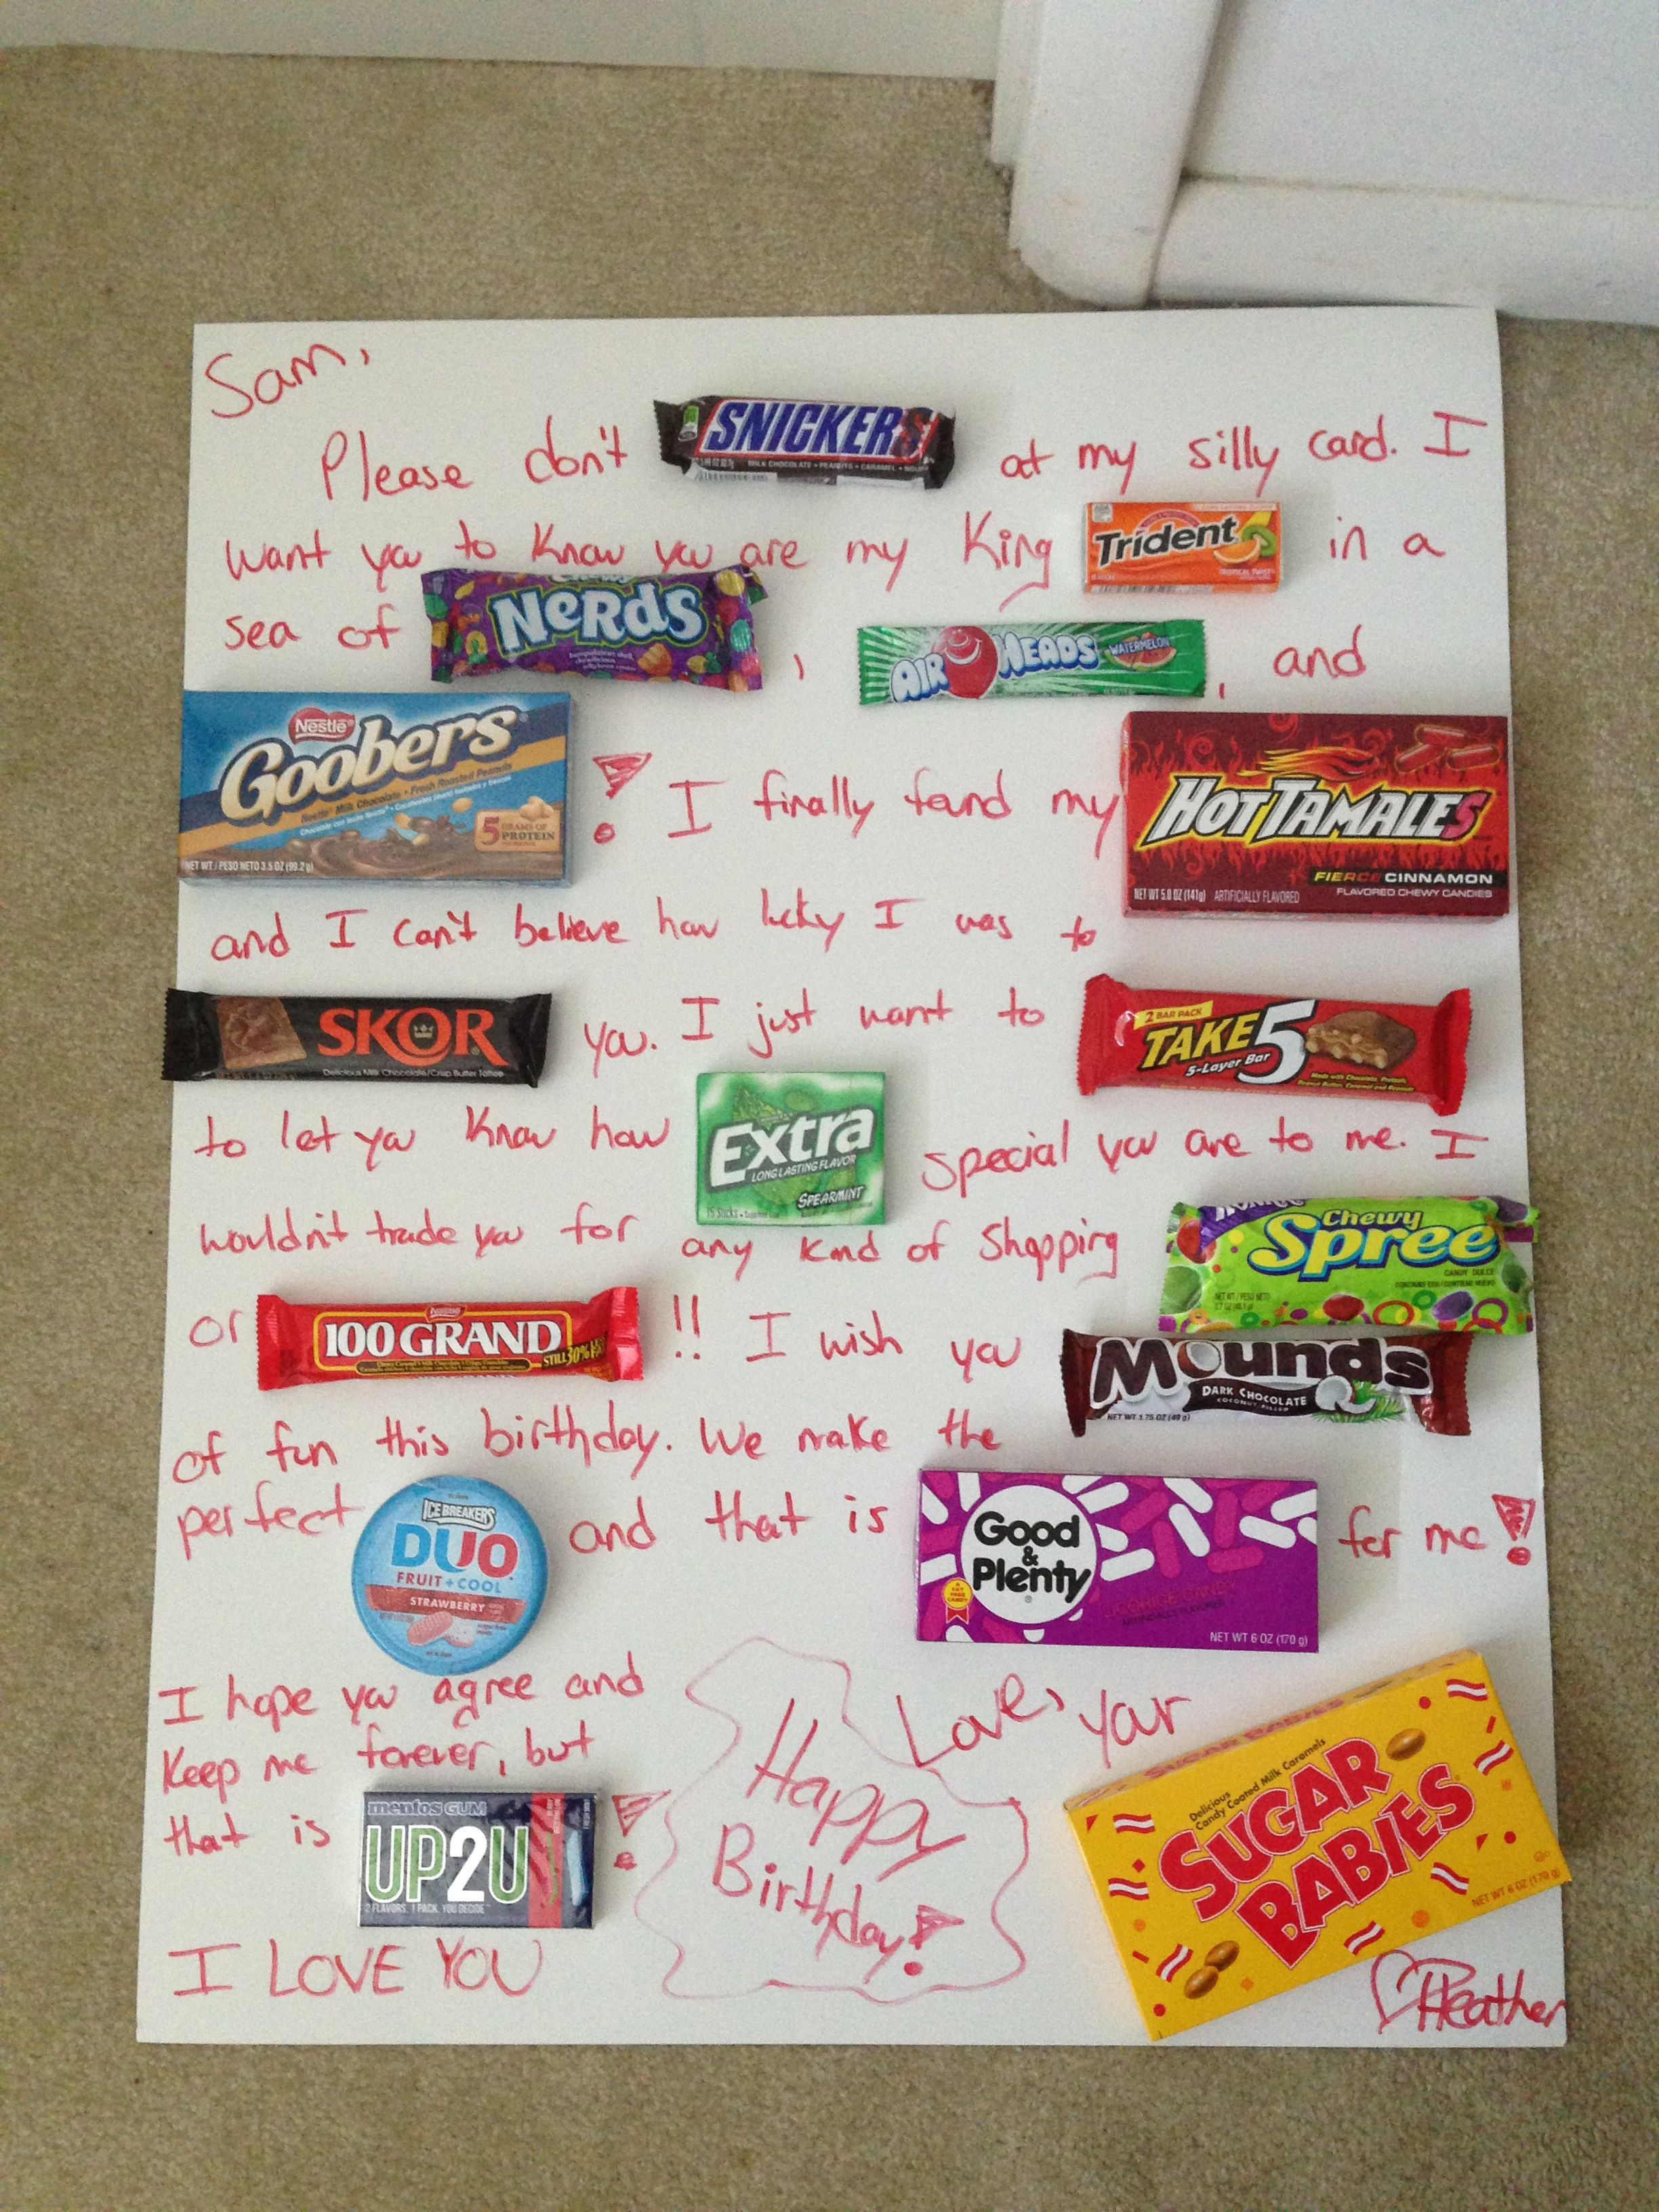 Best ideas about Meaningful Birthday Gifts . Save or Pin Candy card made for boyfriends birthday Personalized Now.